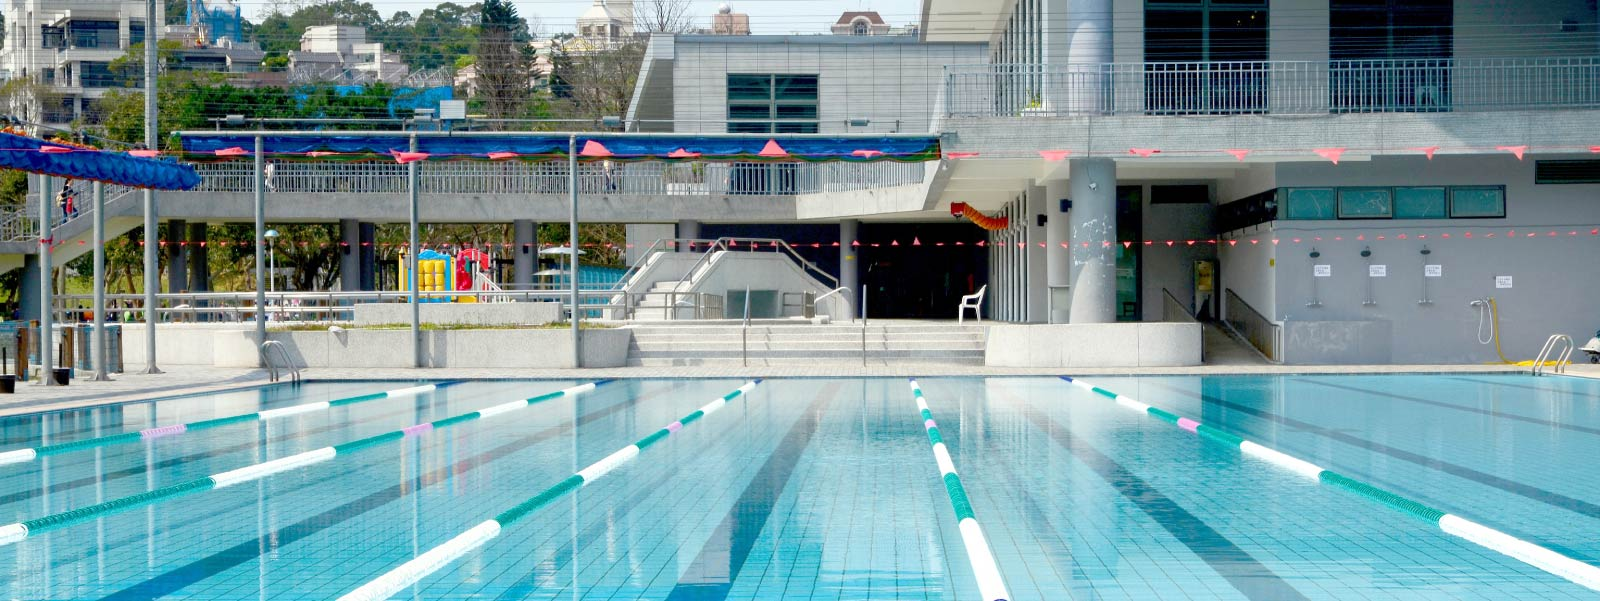 7 Neighborhoods Where You Can Swim for Free at Chicago Park District Pools